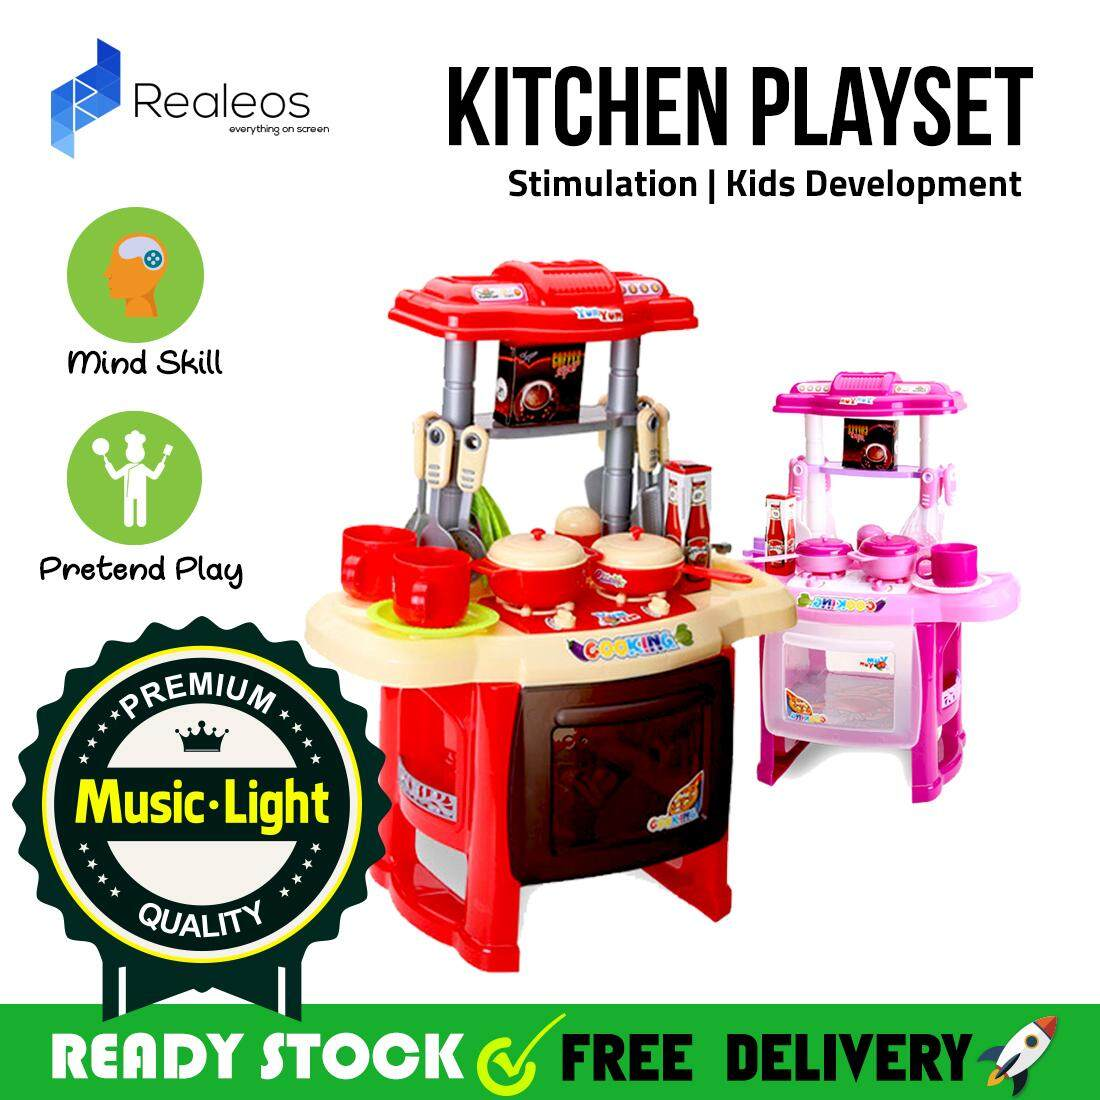 !!READY STOCK!! Realeos Mini Kitchen Playset Pretend Play Kids Educational Toy Stimulation with Music and Light (Pink) - R361